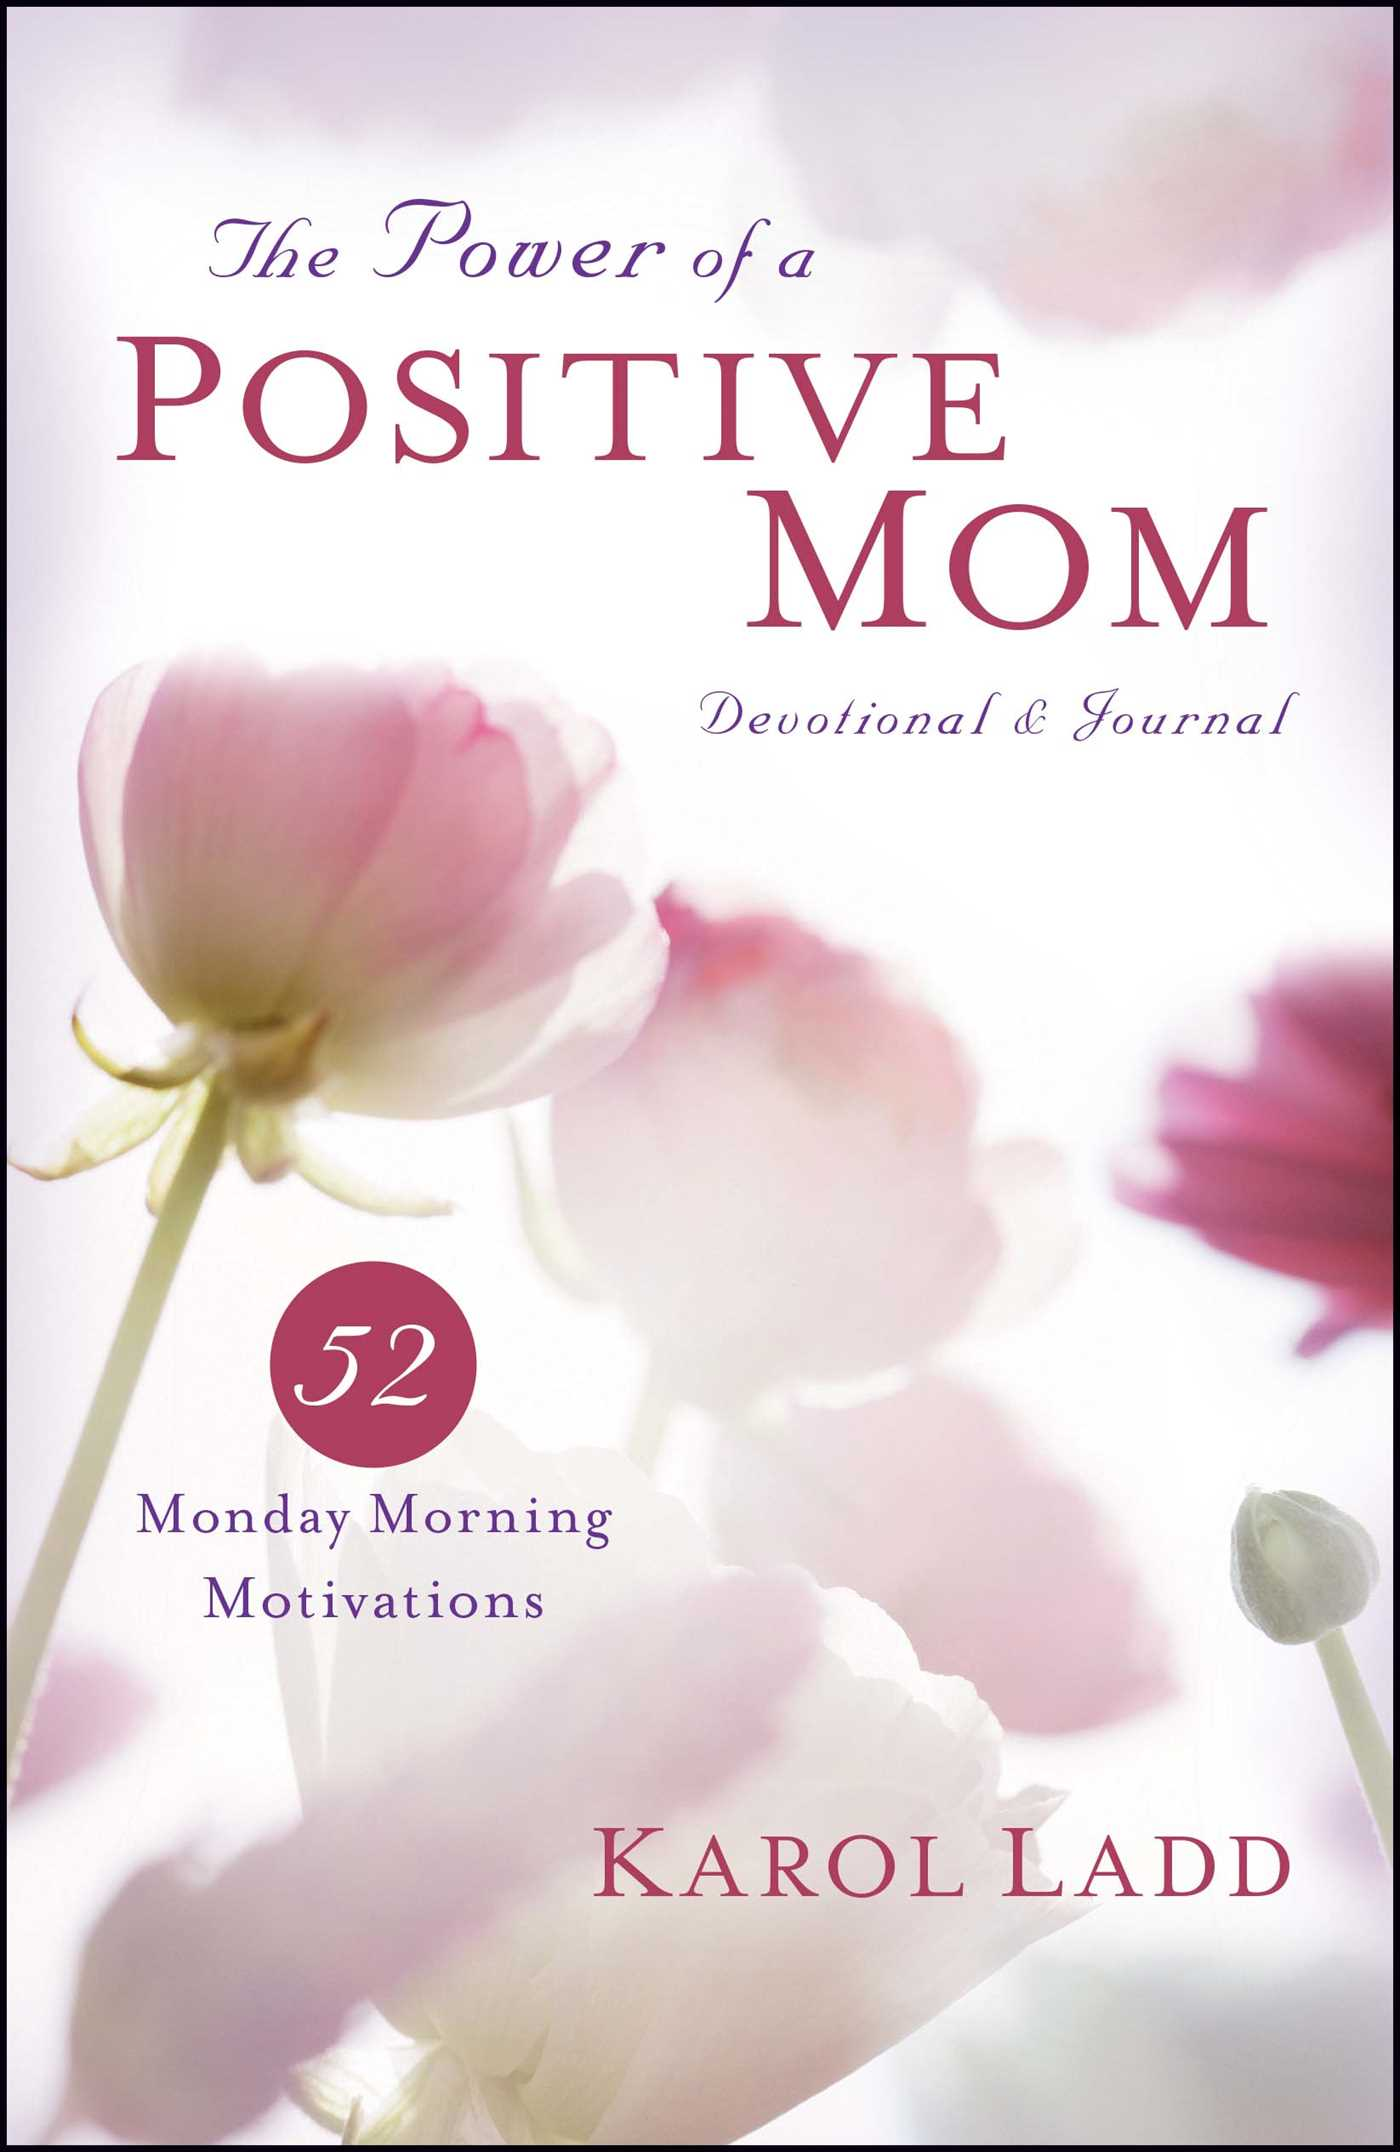 The-power-of-a-positive-mom-devotional-journal-9781451649451_hr